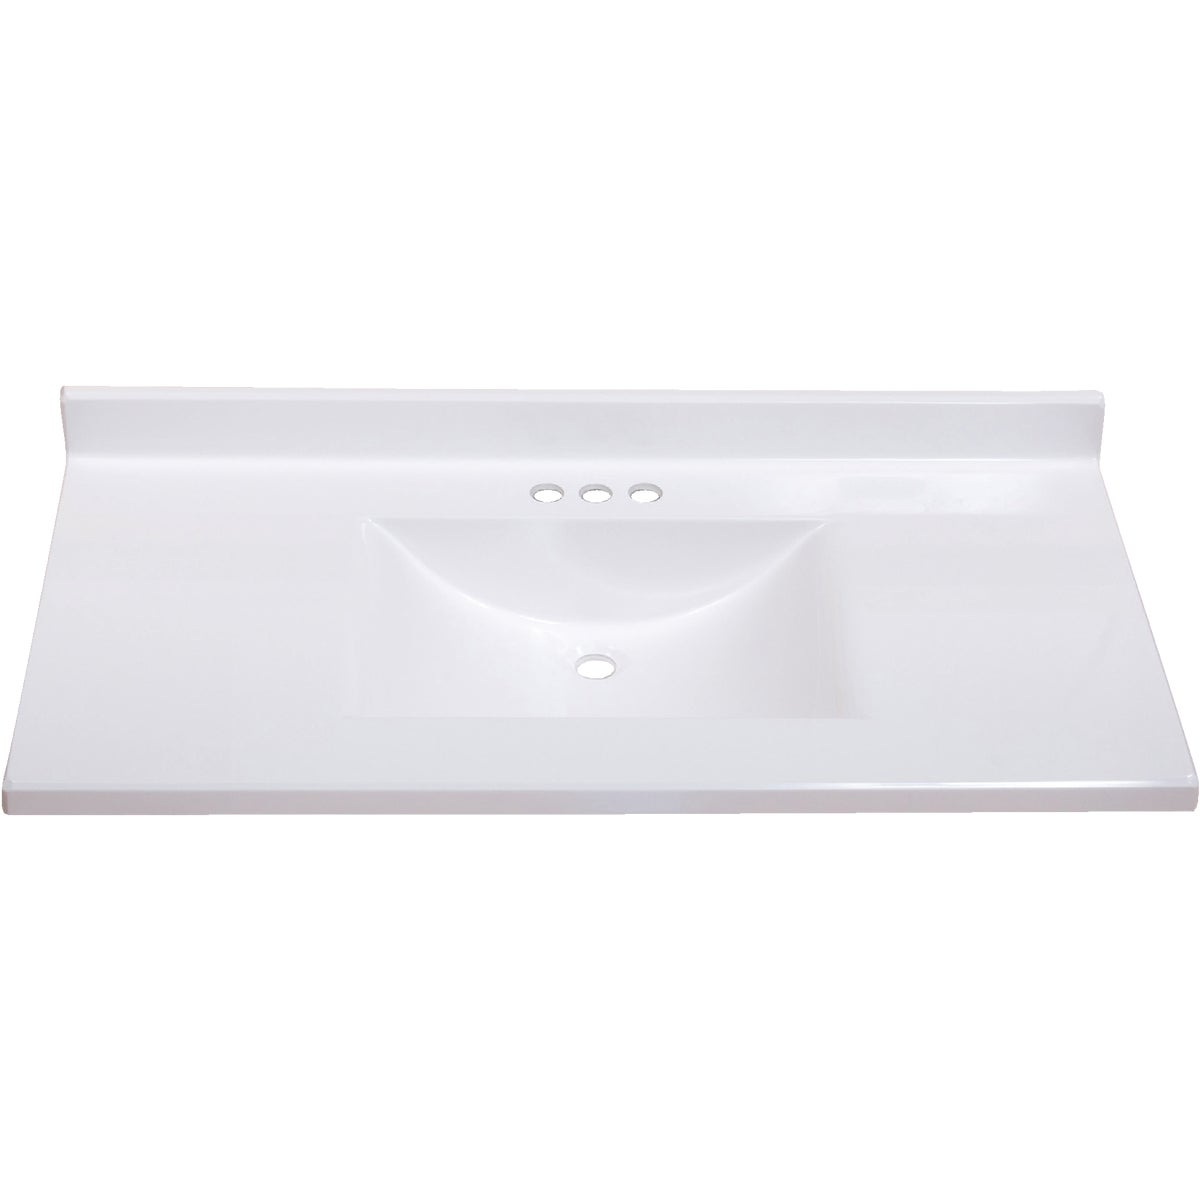 37X22 WHT WVE VANITY TOP - VW3722SPW by Imperial Marble Corp